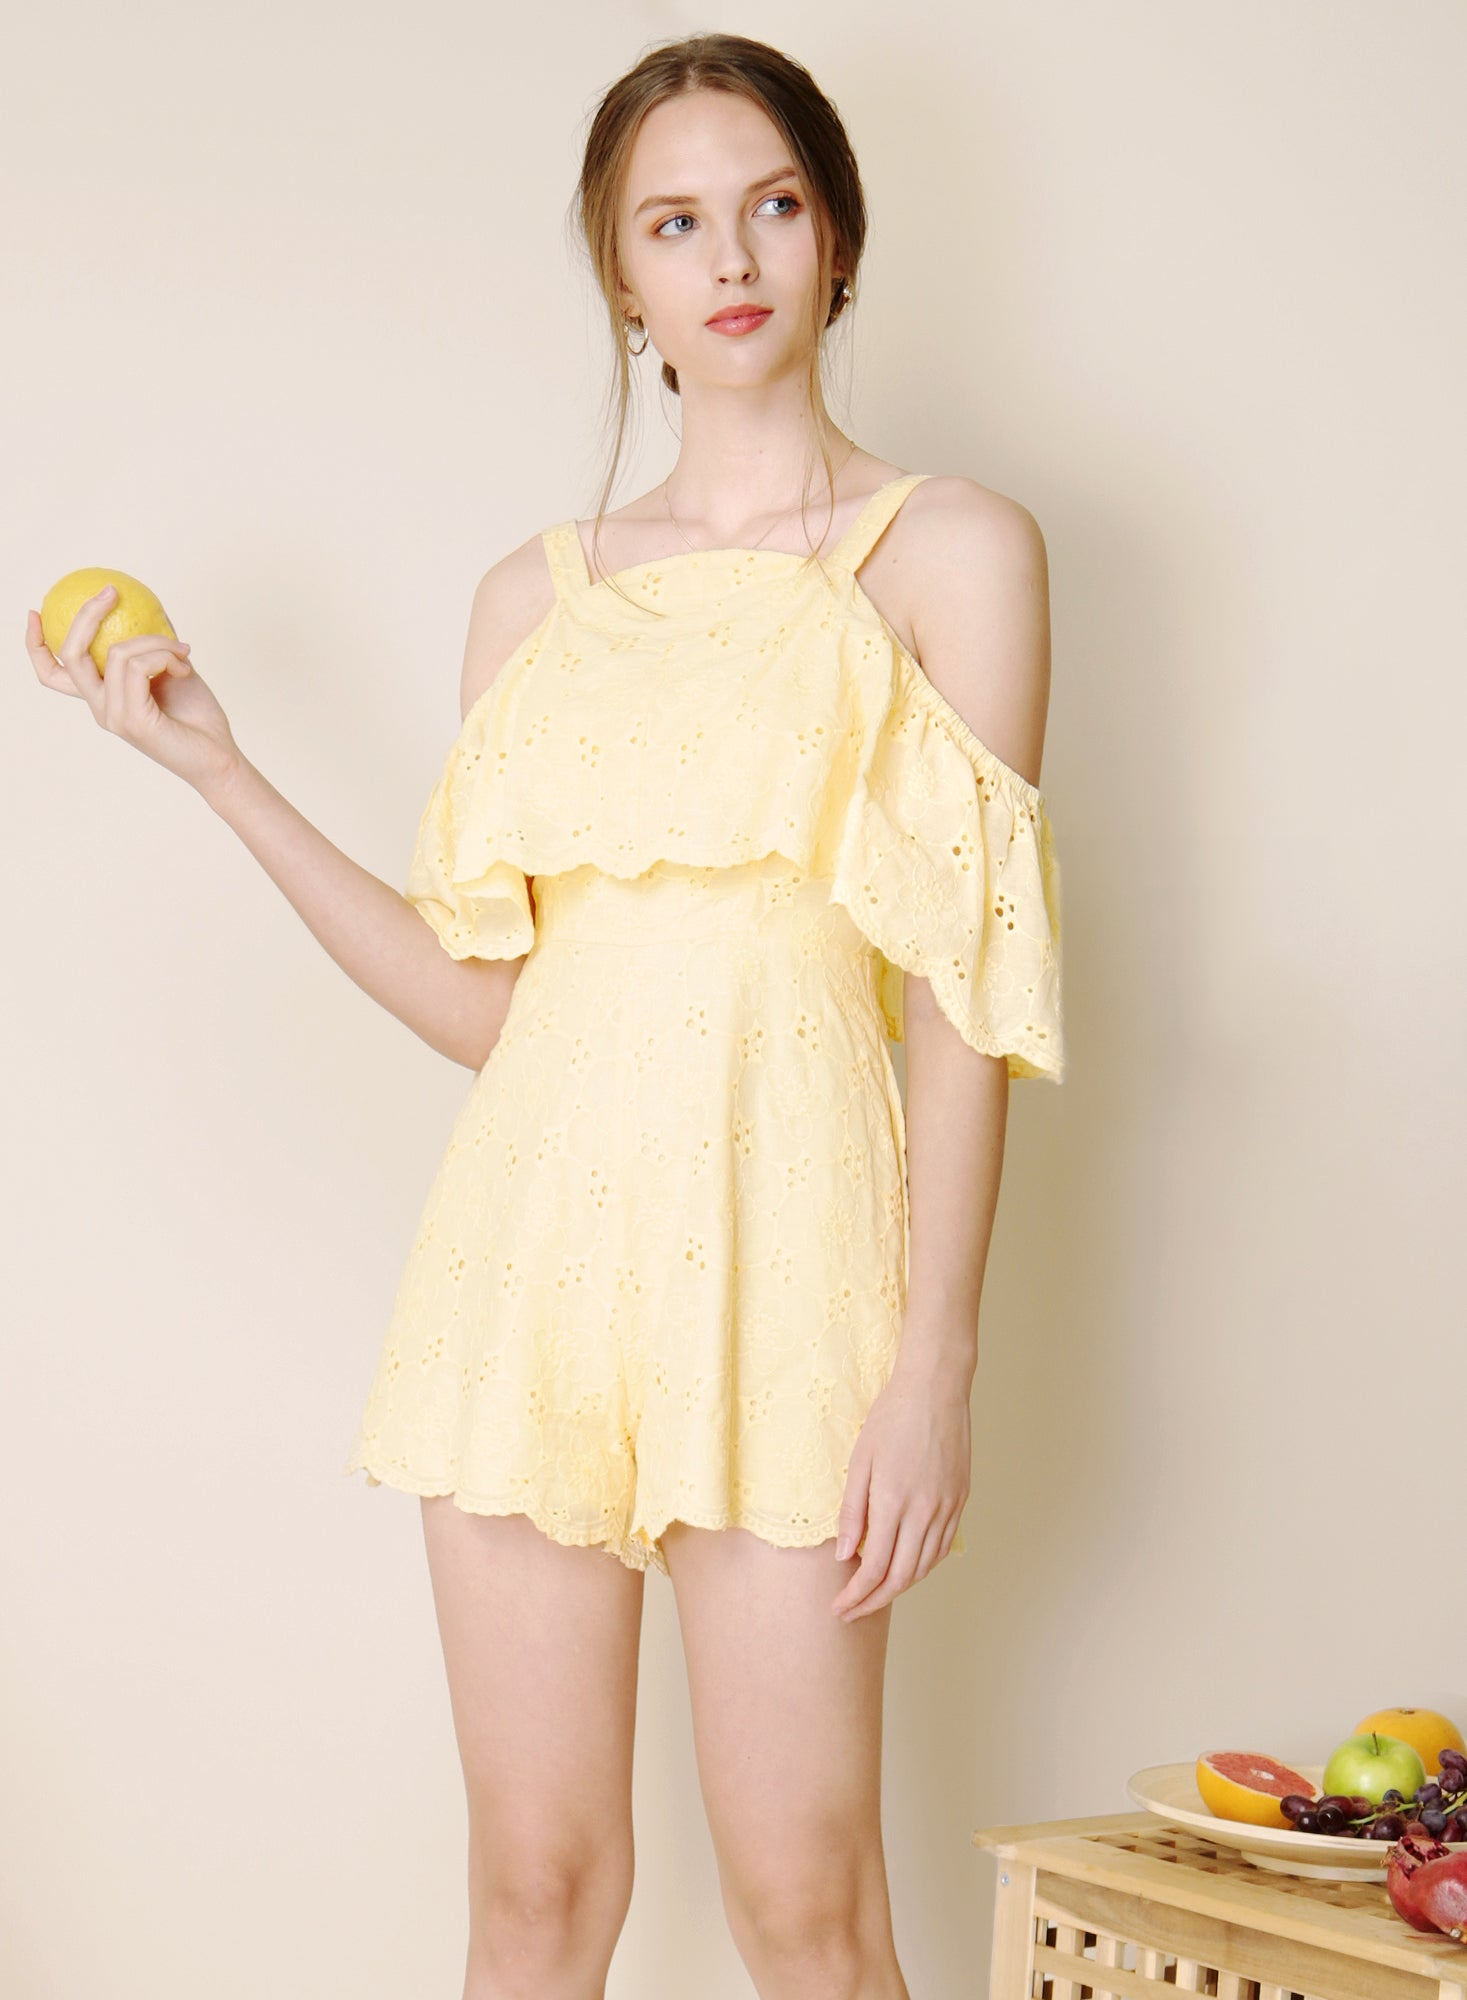 Imagine Cold Shoulder Eyelet Romper (Lemon) at $ 29.05 only sold at And Well Dressed Online Fashion Store Singapore